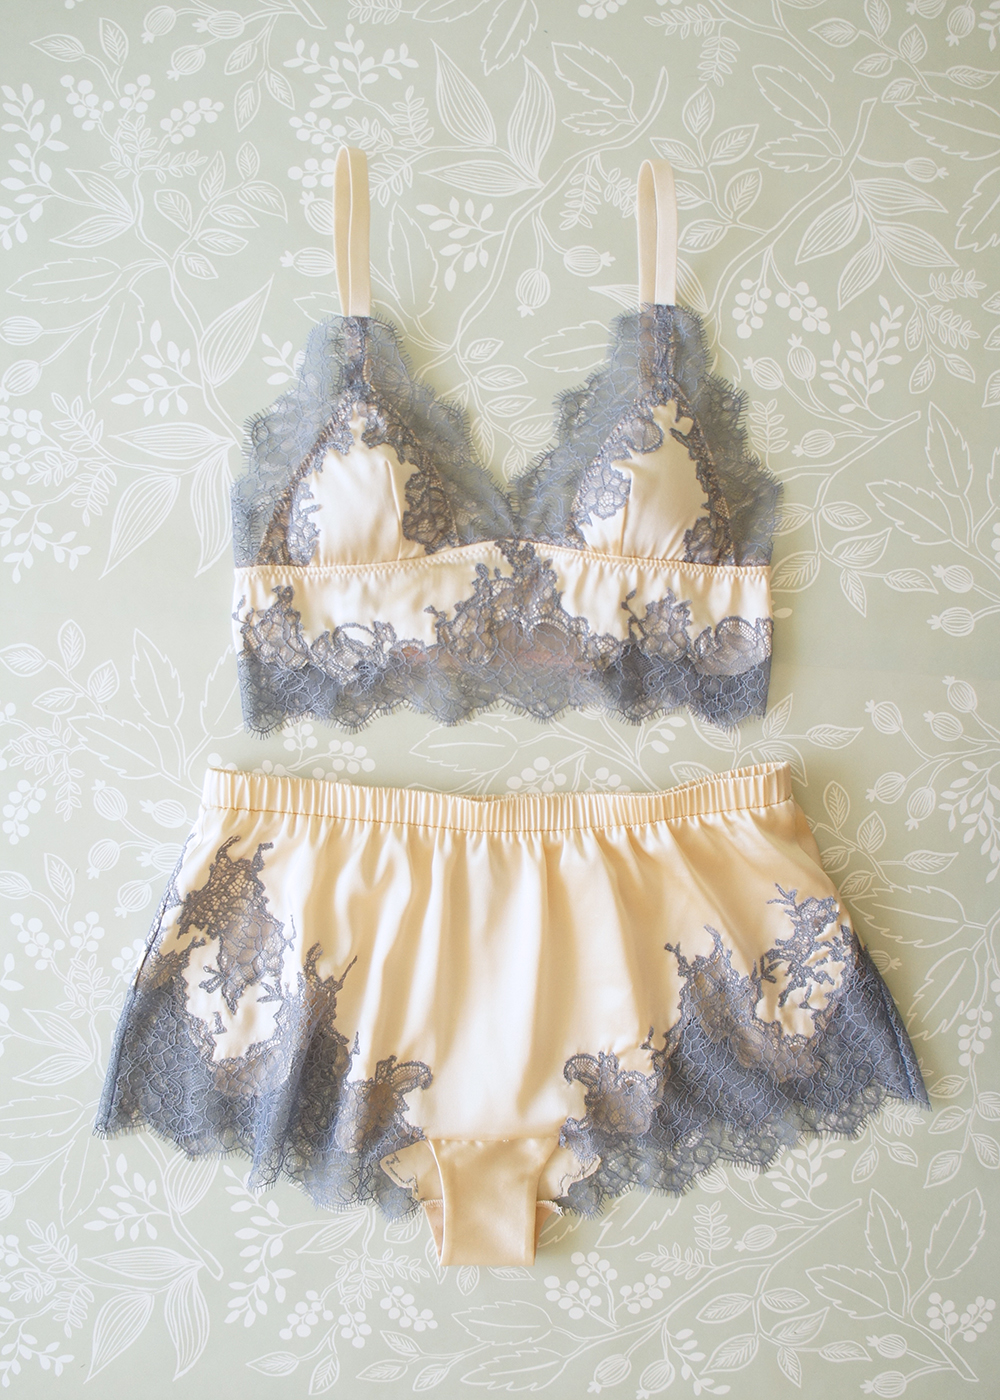 Dove gray floral lace appliquéd by hand on nude cream silk.